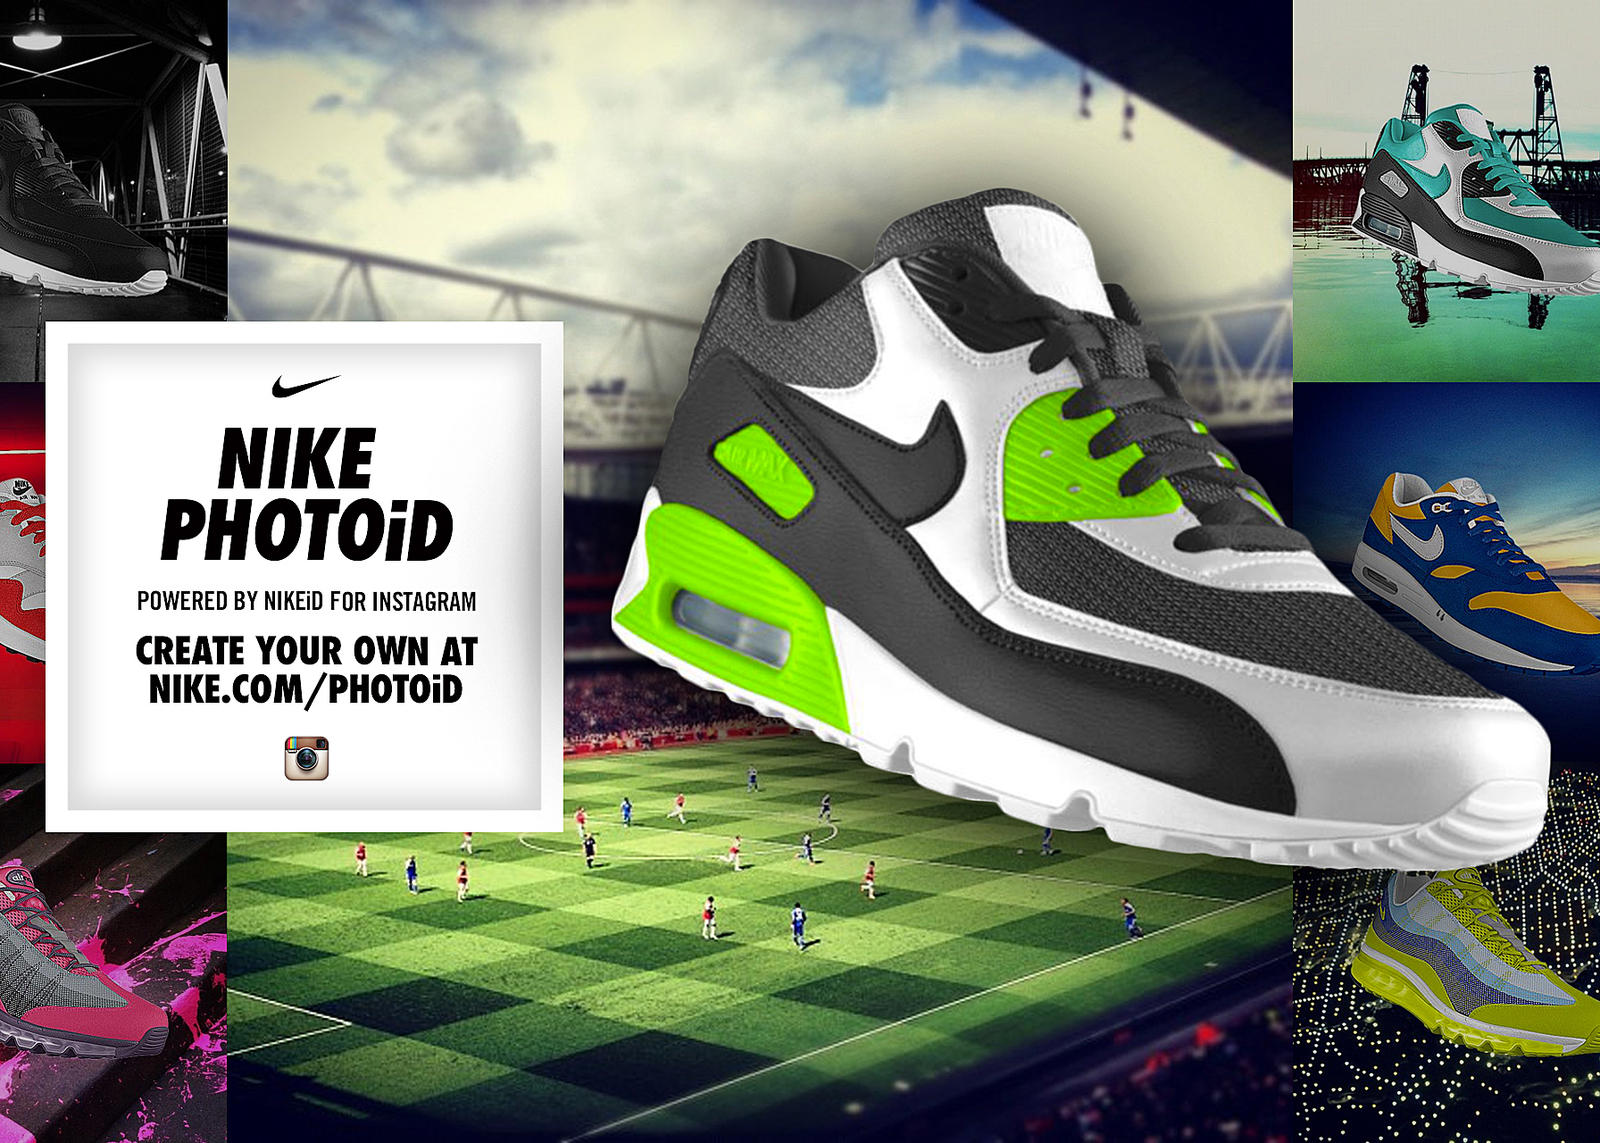 how long does nikeid take